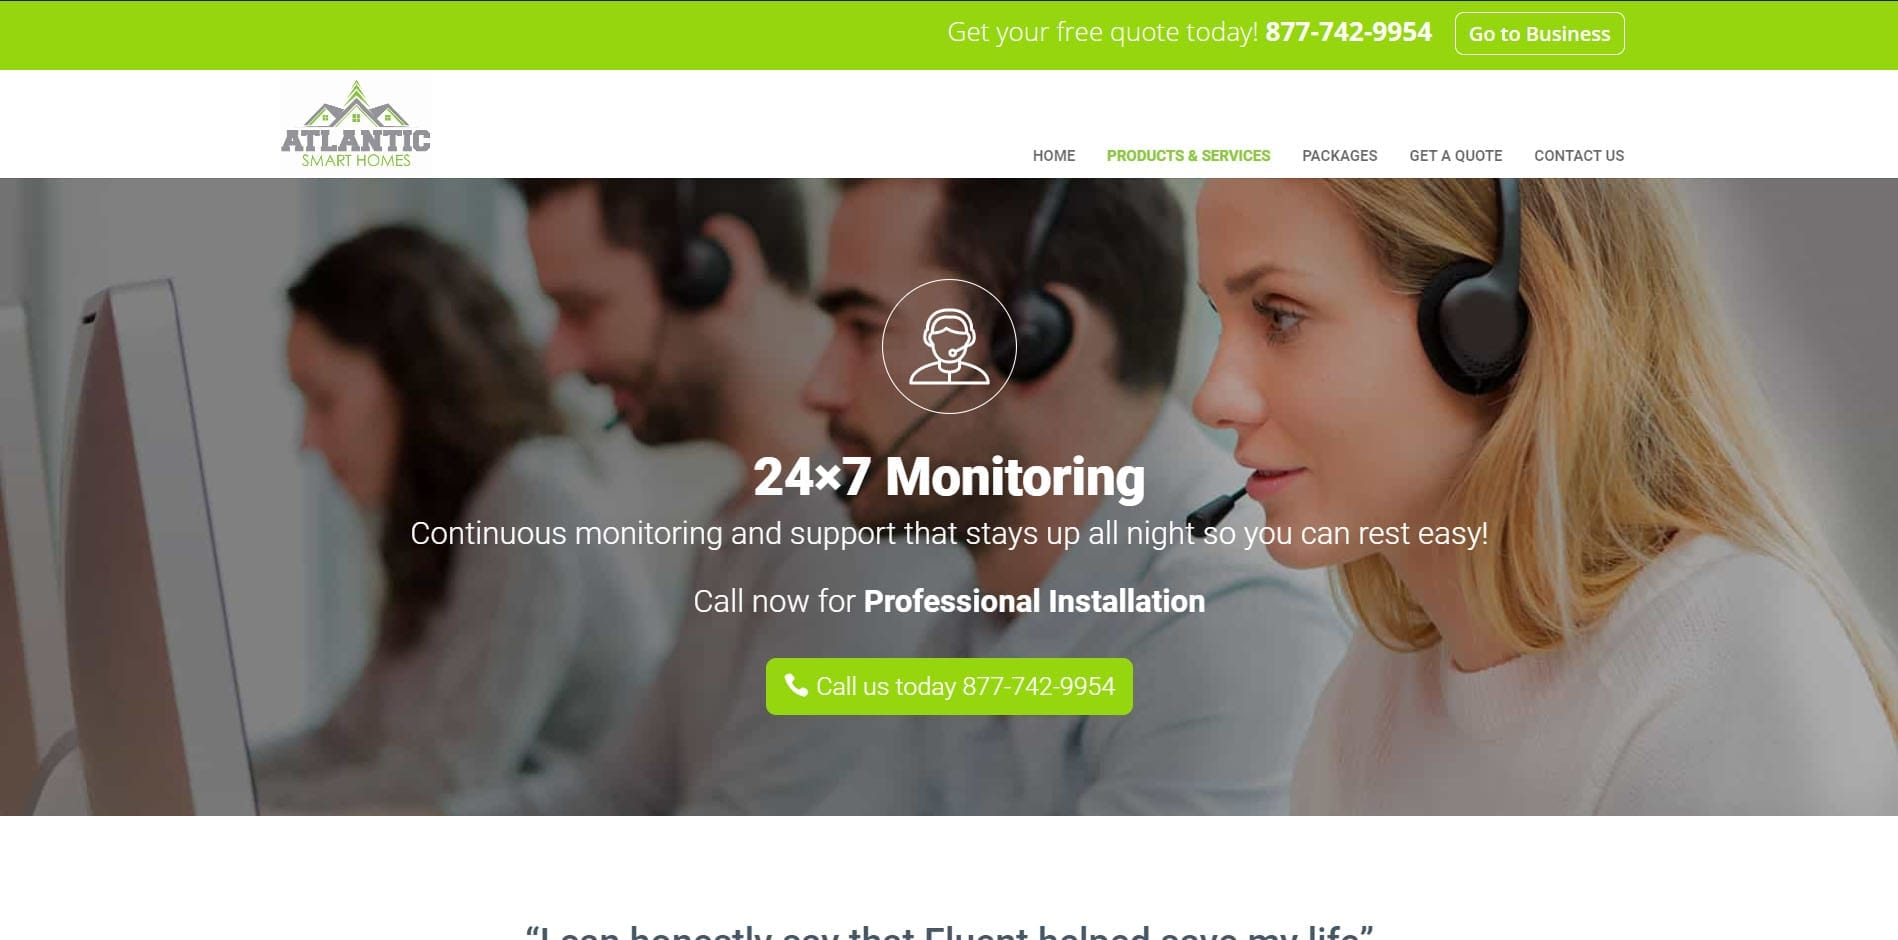 Atlantic Smart Homes - Web monitoring Built by Eagle Digital Media